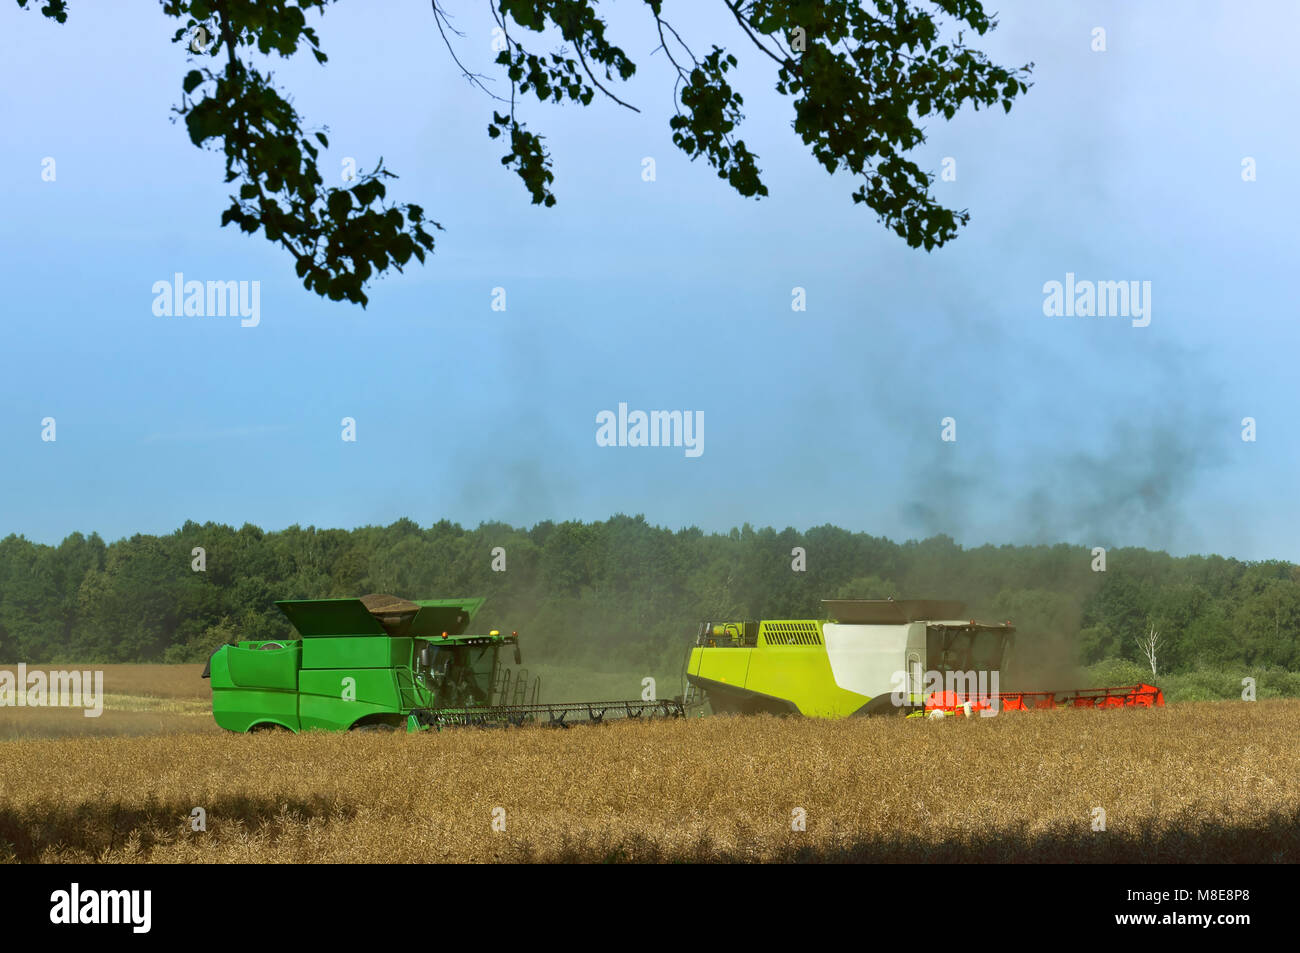 two agricultural machines operate in the field, agricultural land, ain harvesting machines operate in the field - Stock Image